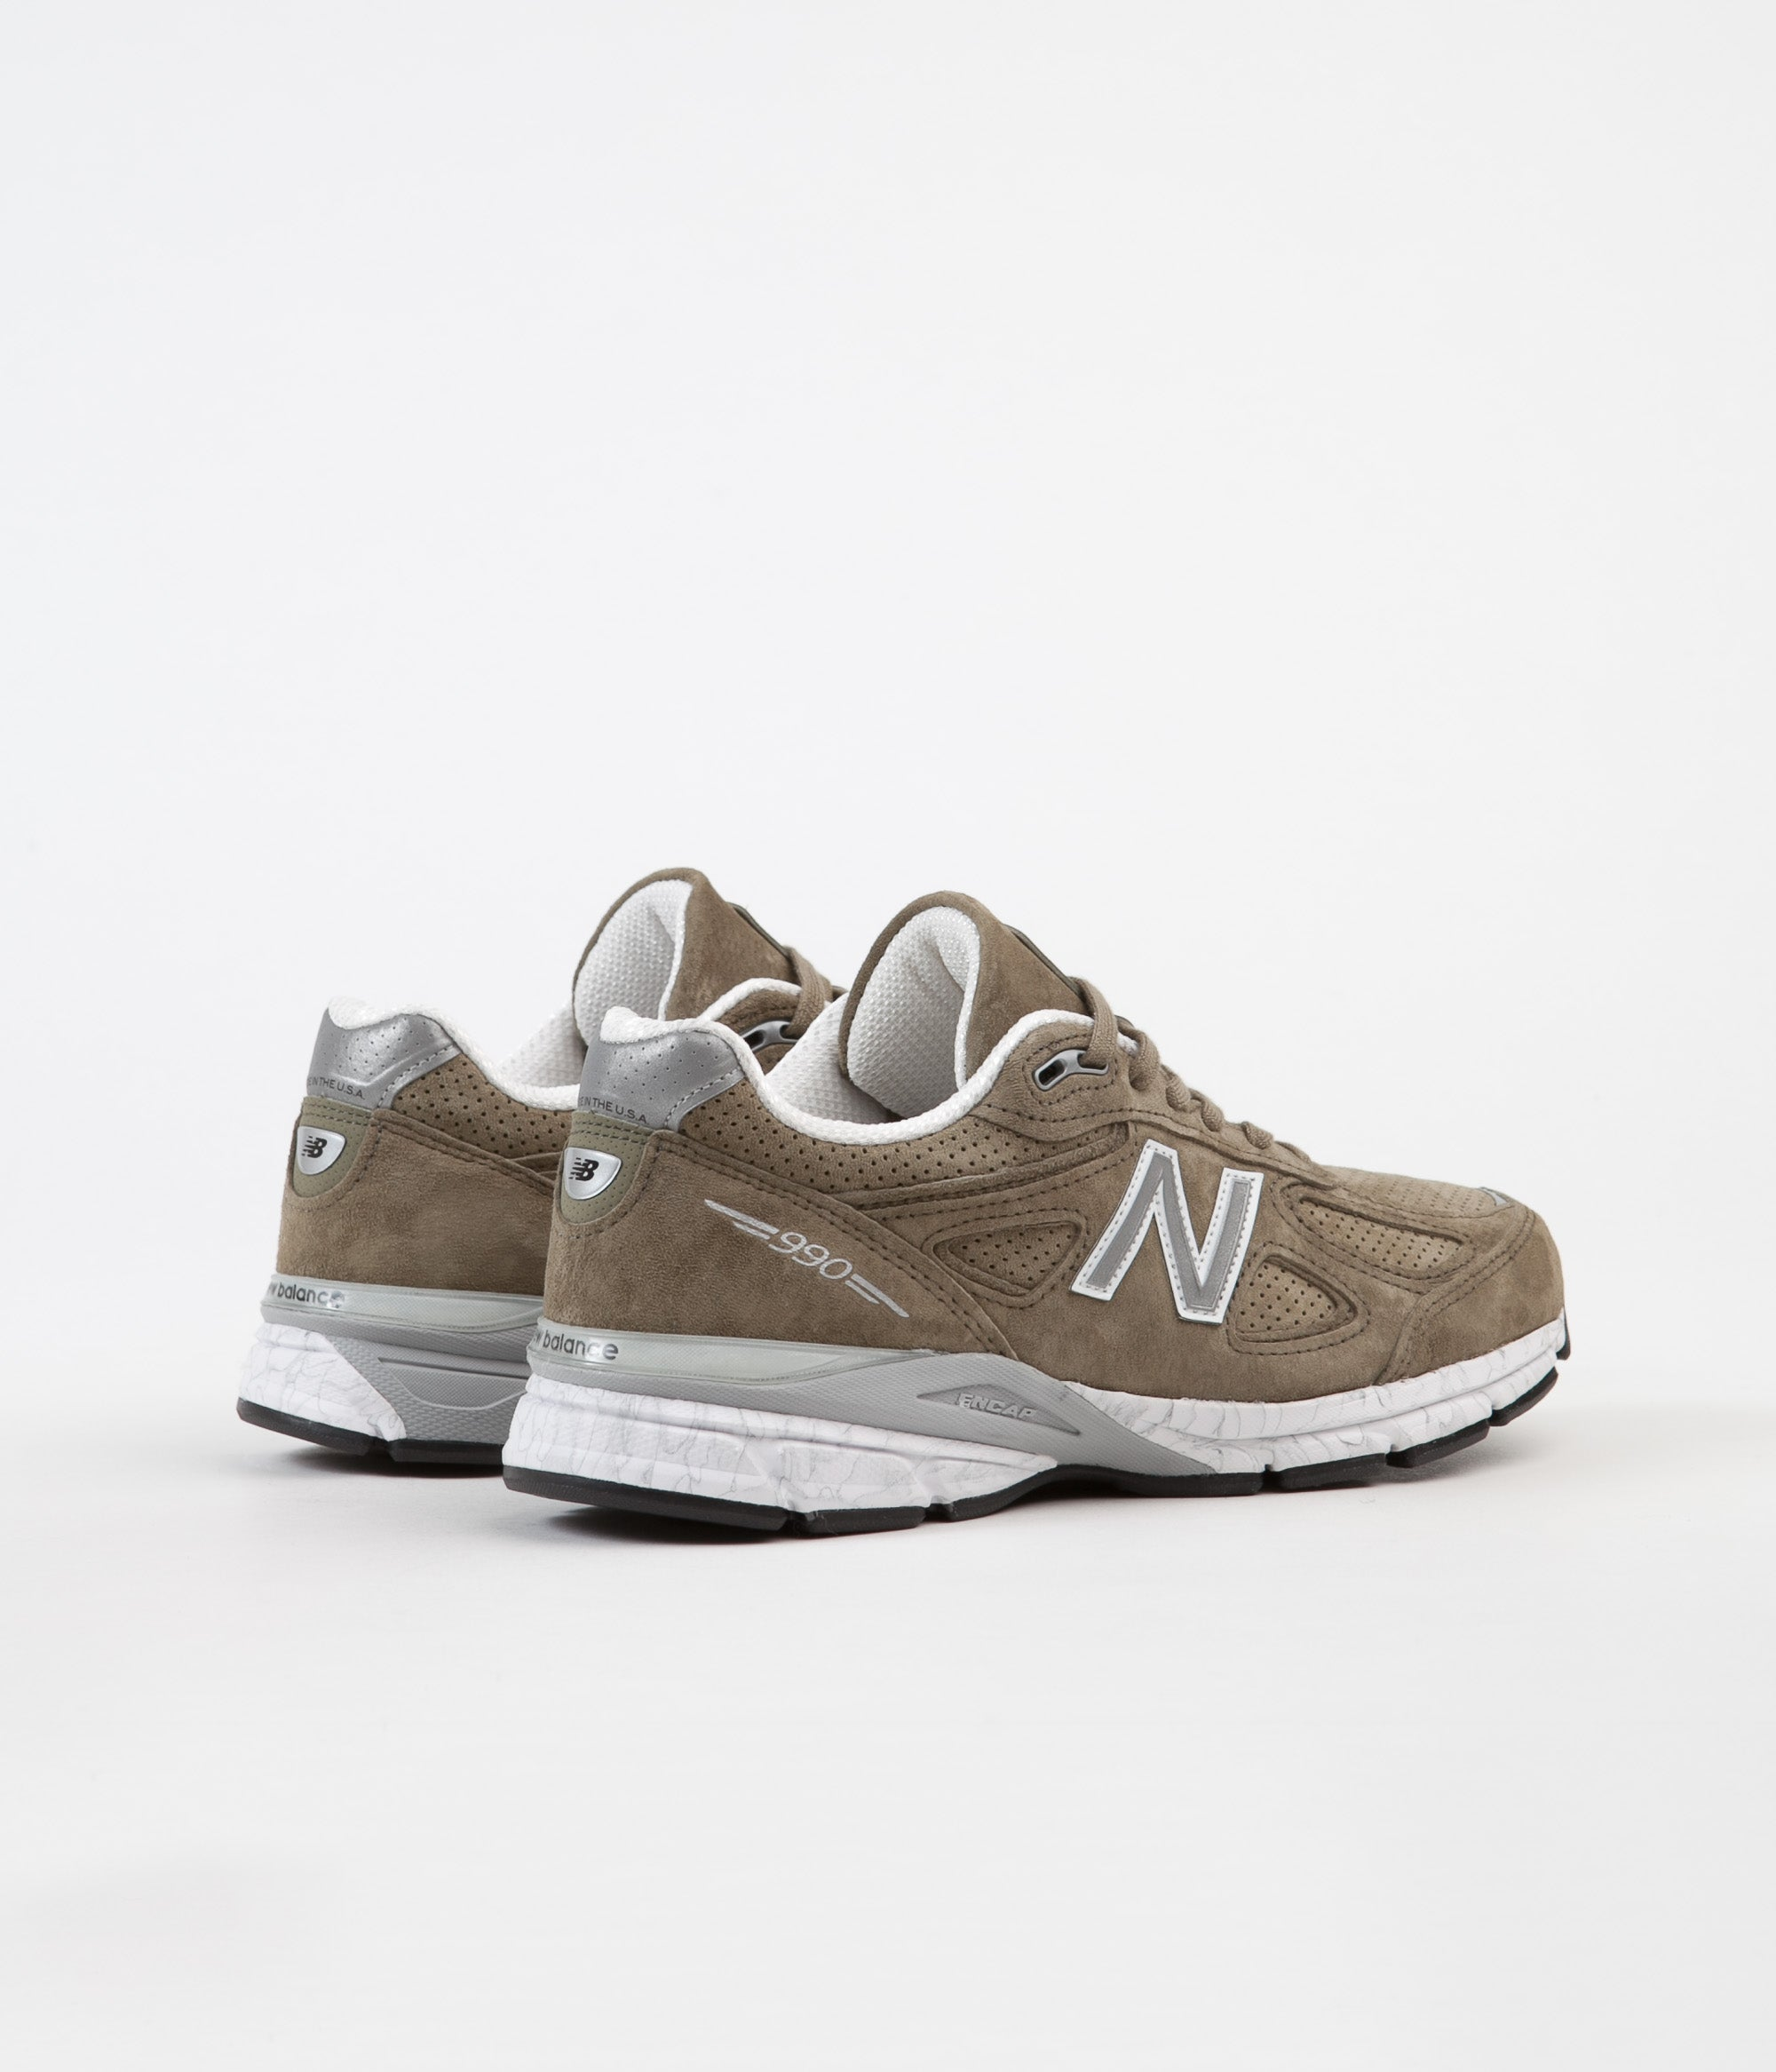 New Balance M990V4 Made In US Shoes